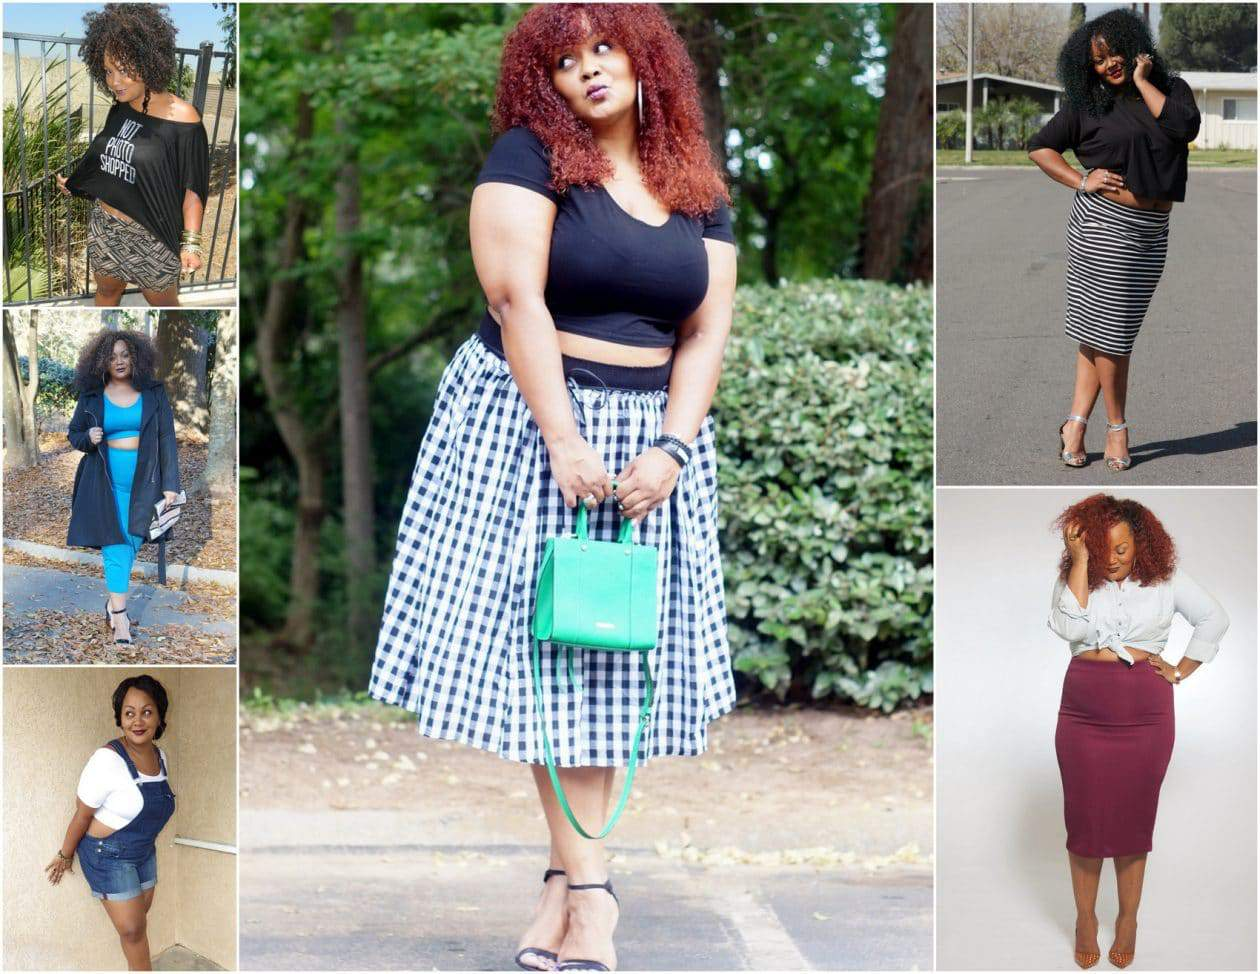 Plus size blogger Marie Denee in her Crop Top #RocktheCrop